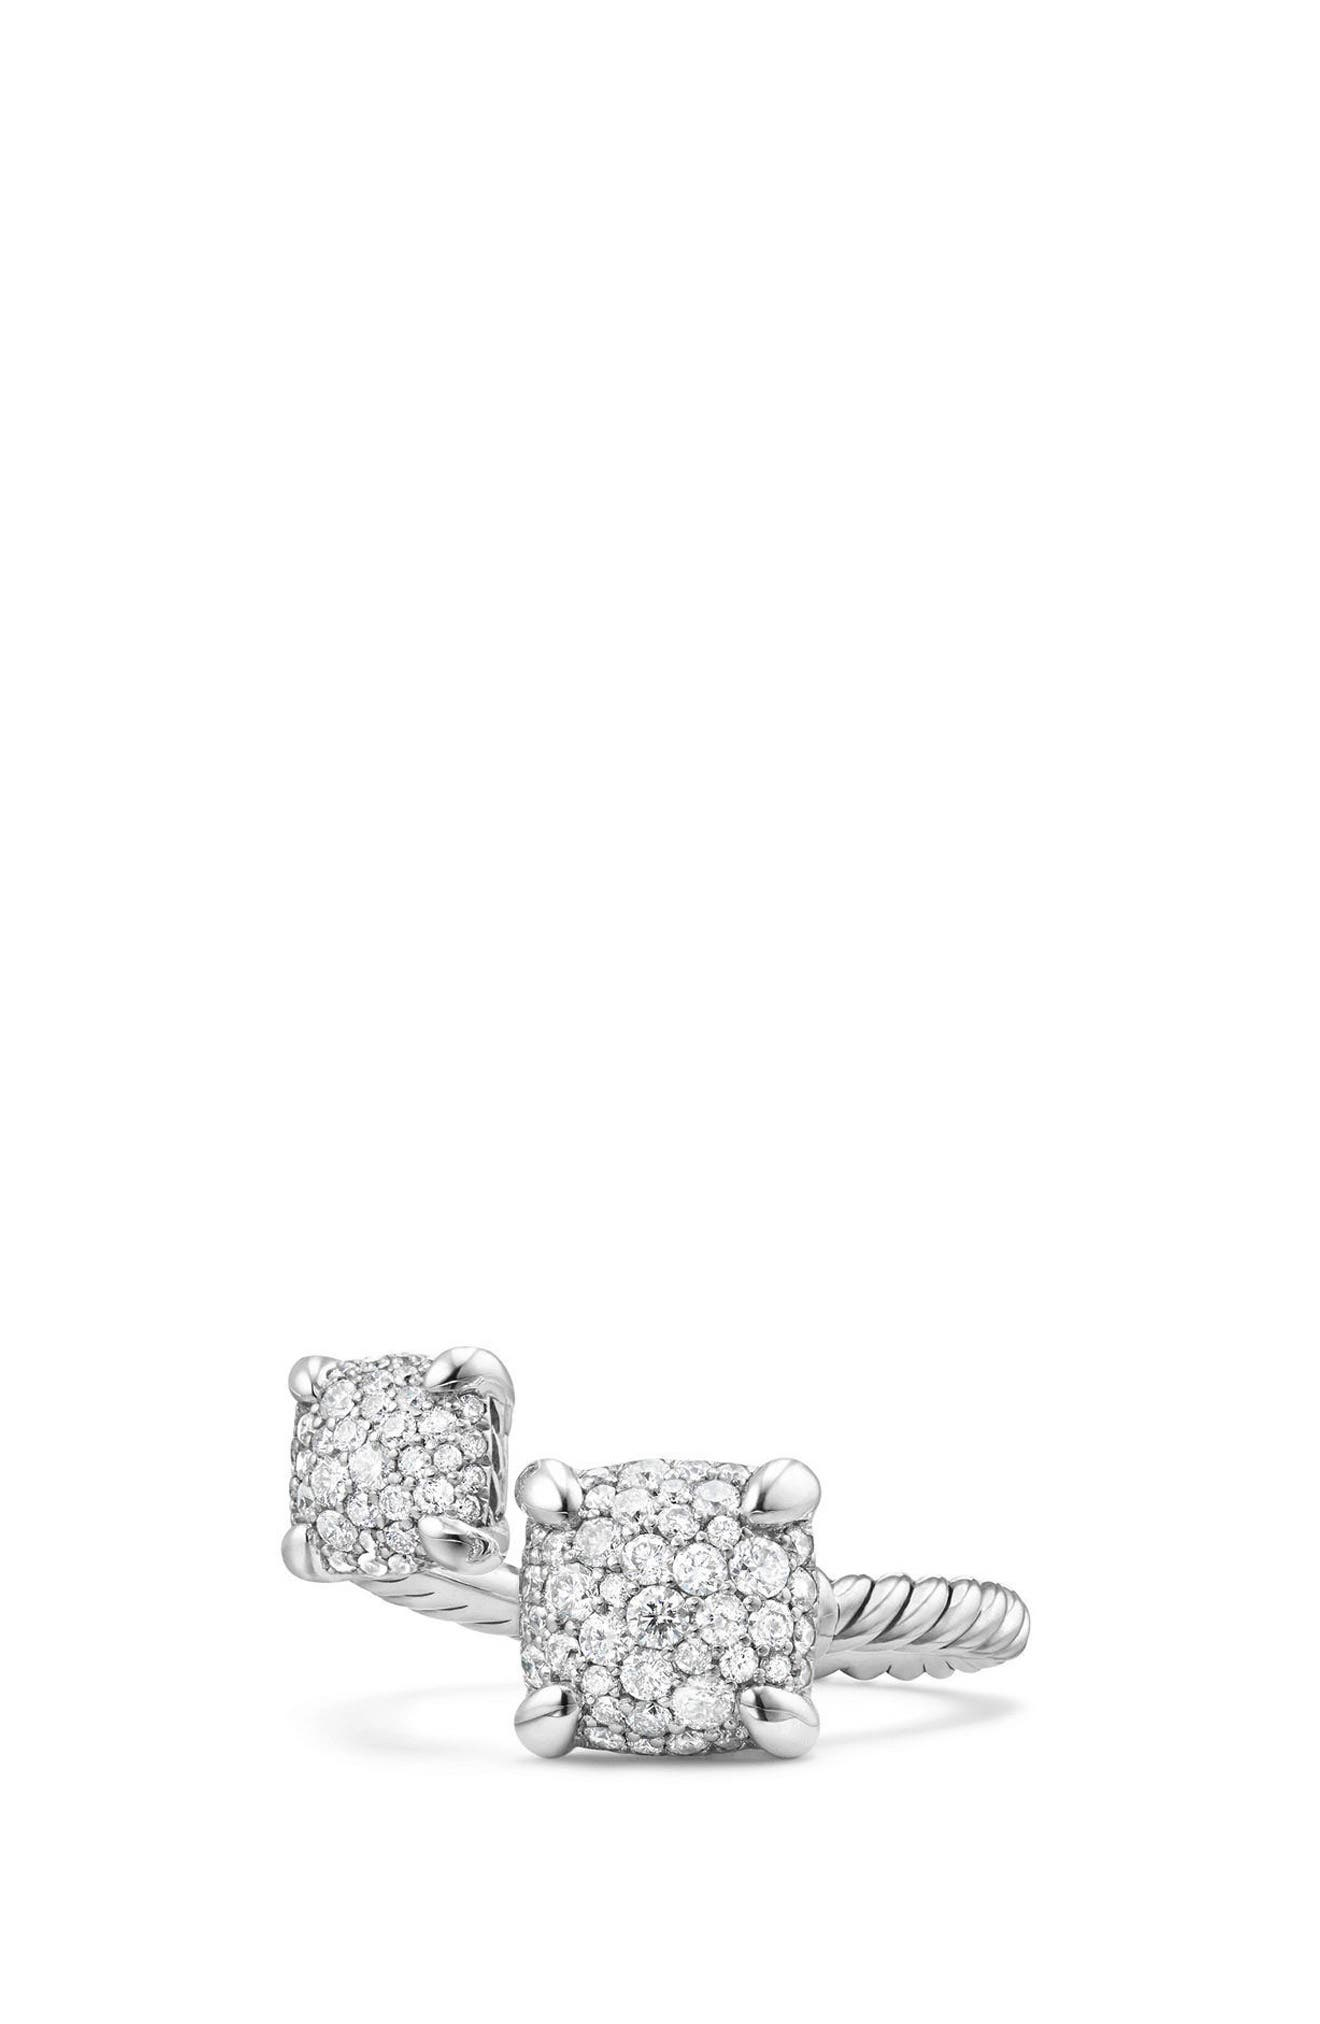 Châtelaine Bypass Ring with Diamonds,                         Main,                         color, Silver